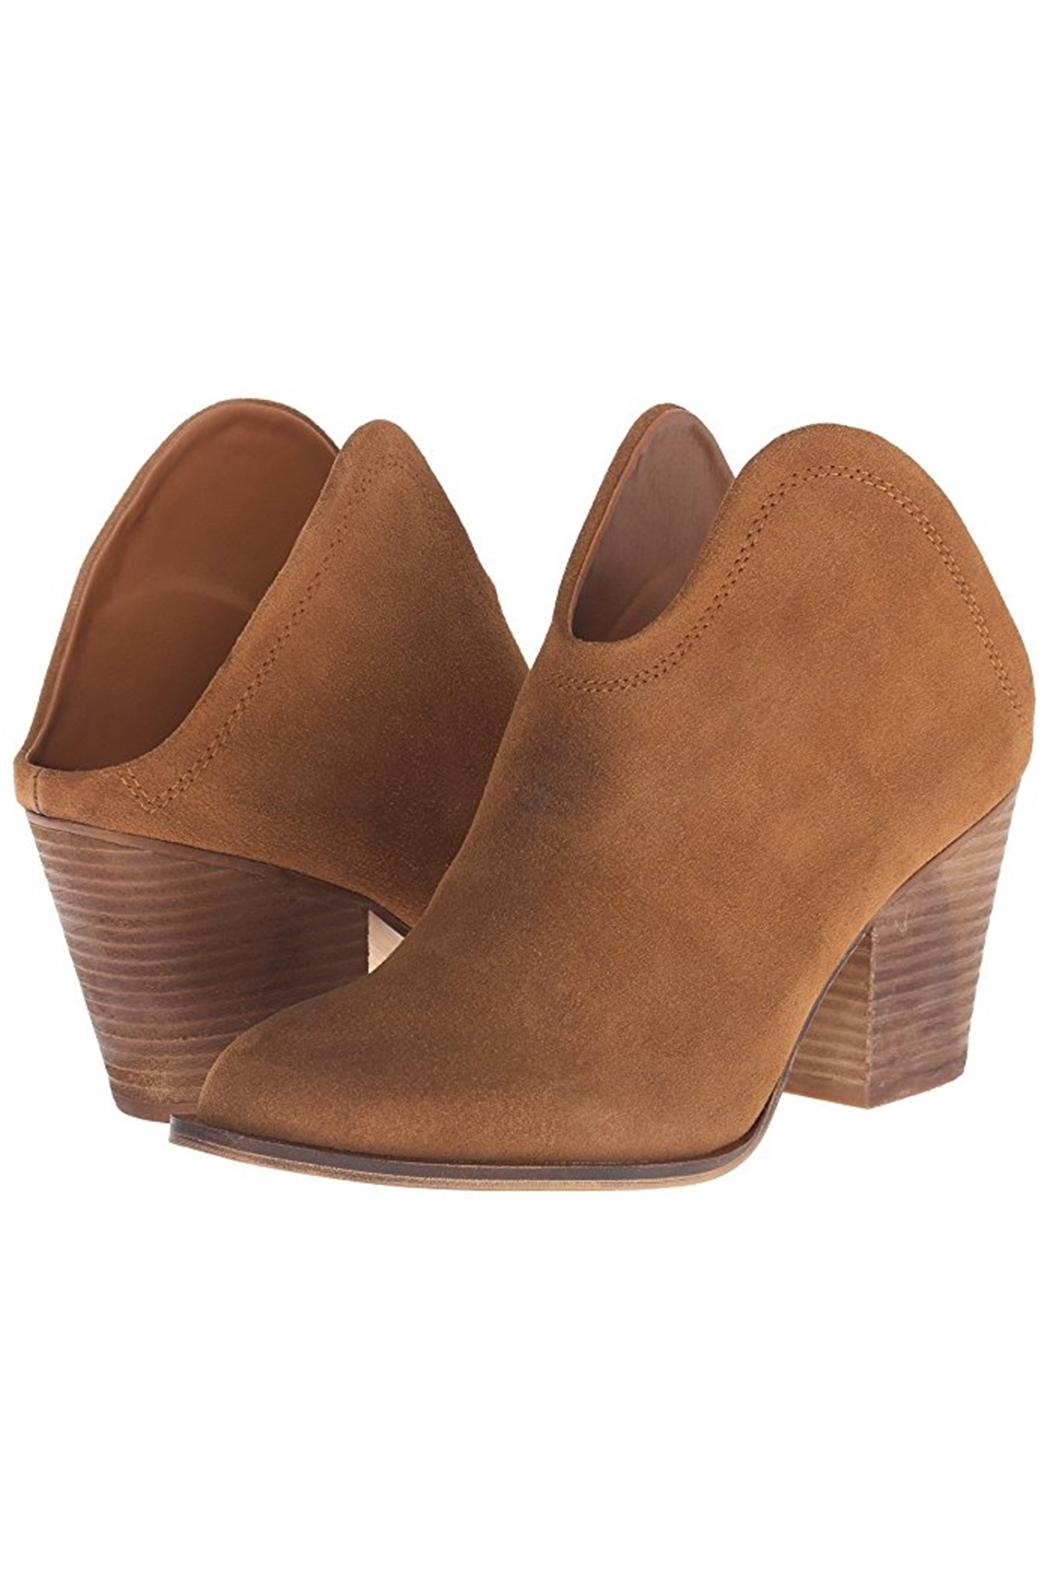 Chinese Laundry Kelso Bootie - Main Image